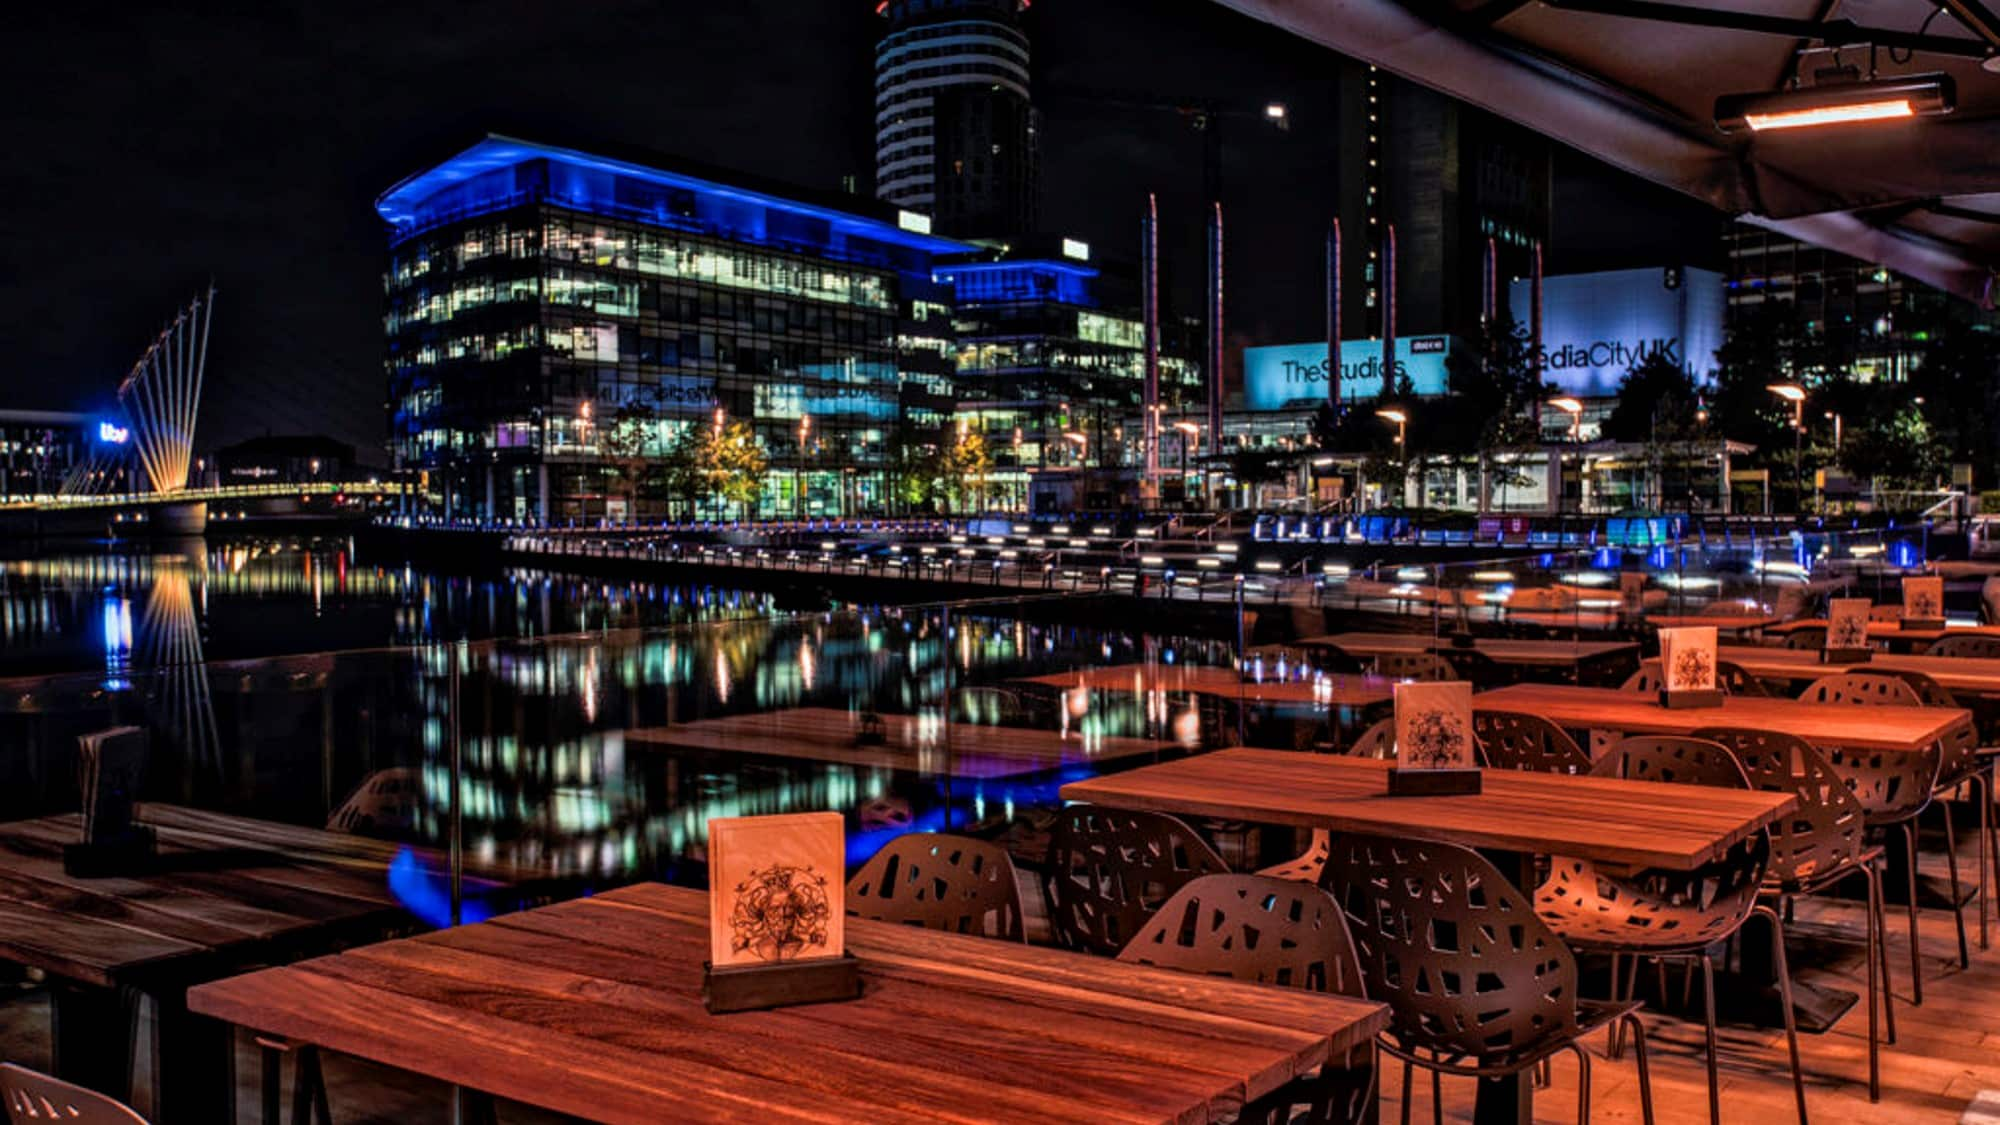 Pelotta outside bar stools and chairs at Alchemist Media City by DeFrae Contract Furniture Night View